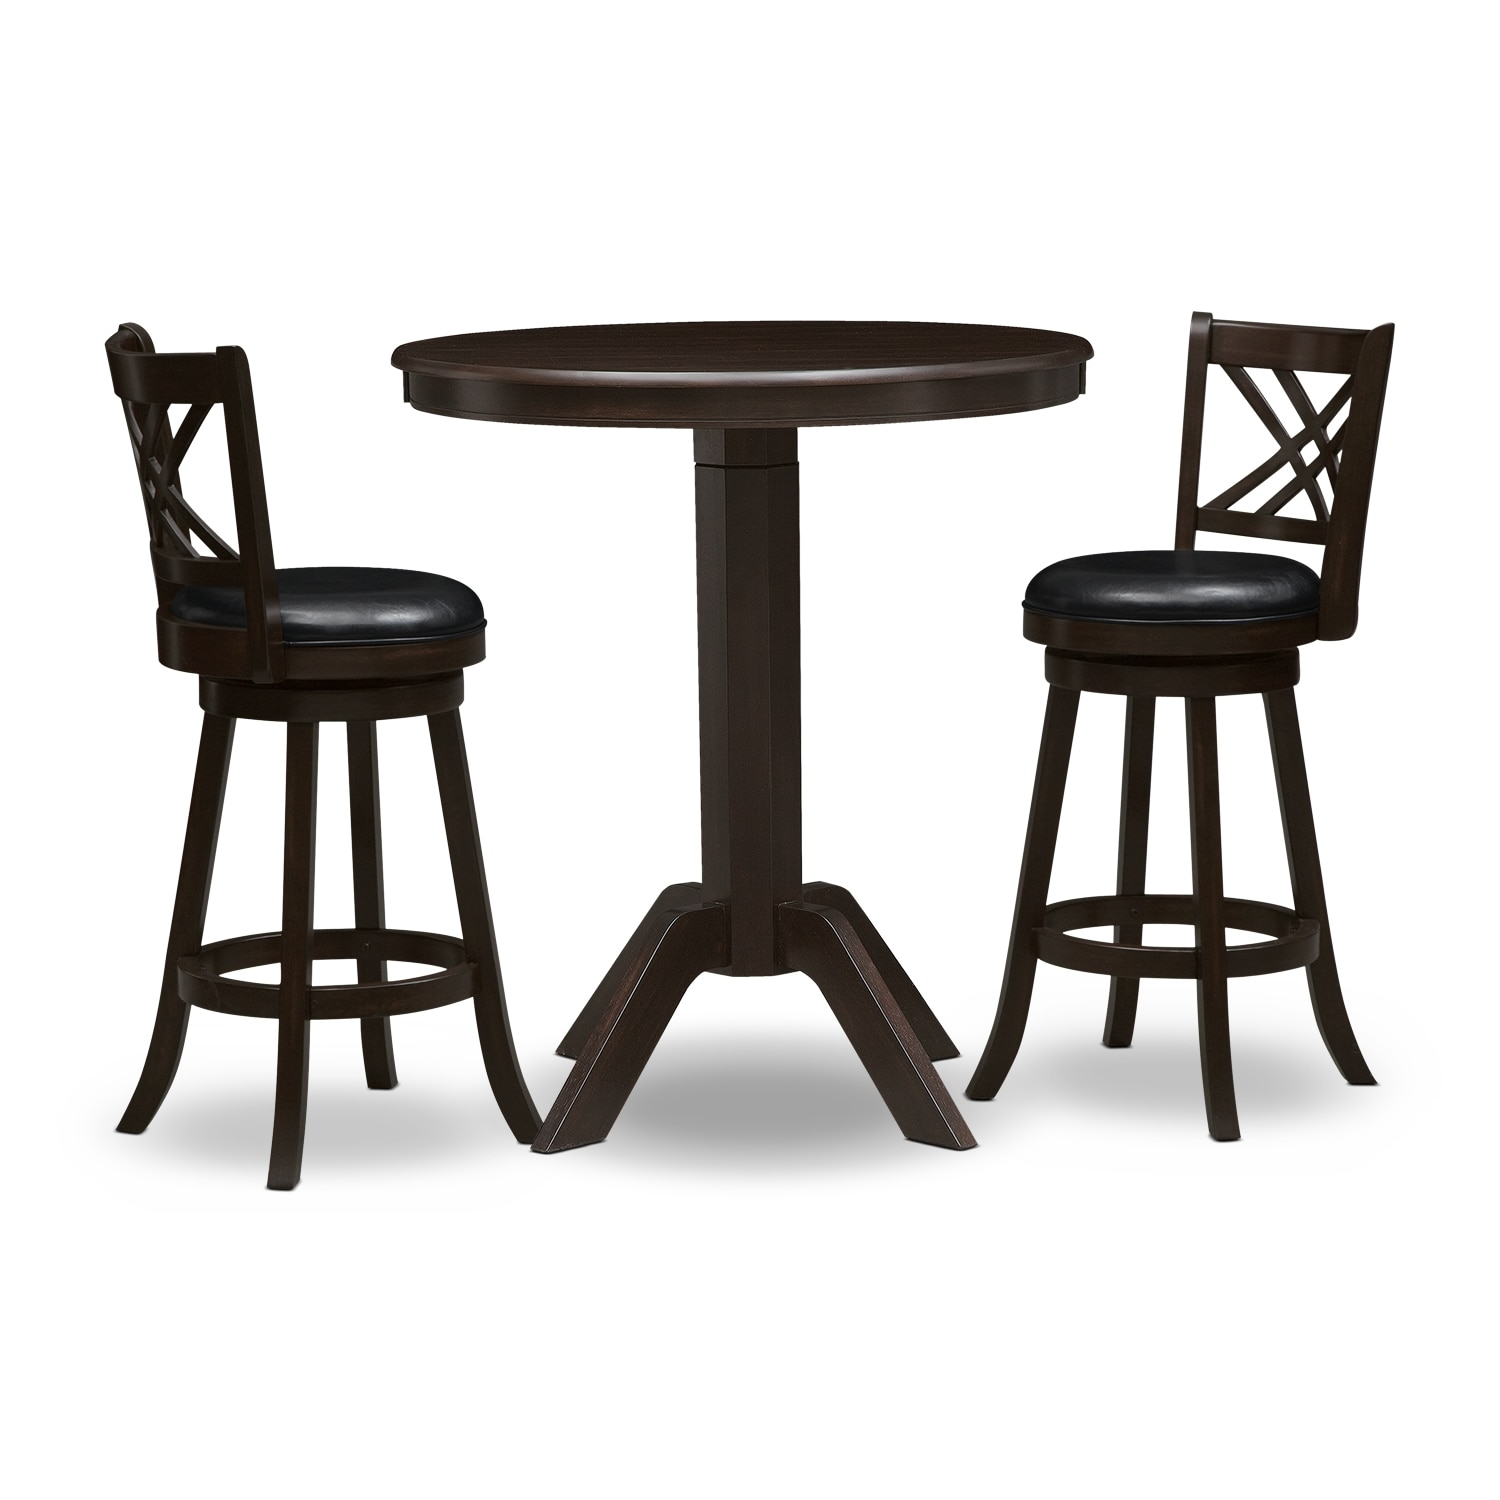 Dining Room Furniture - Concord Merrimac 3 Pc. Bar-Height Dinette